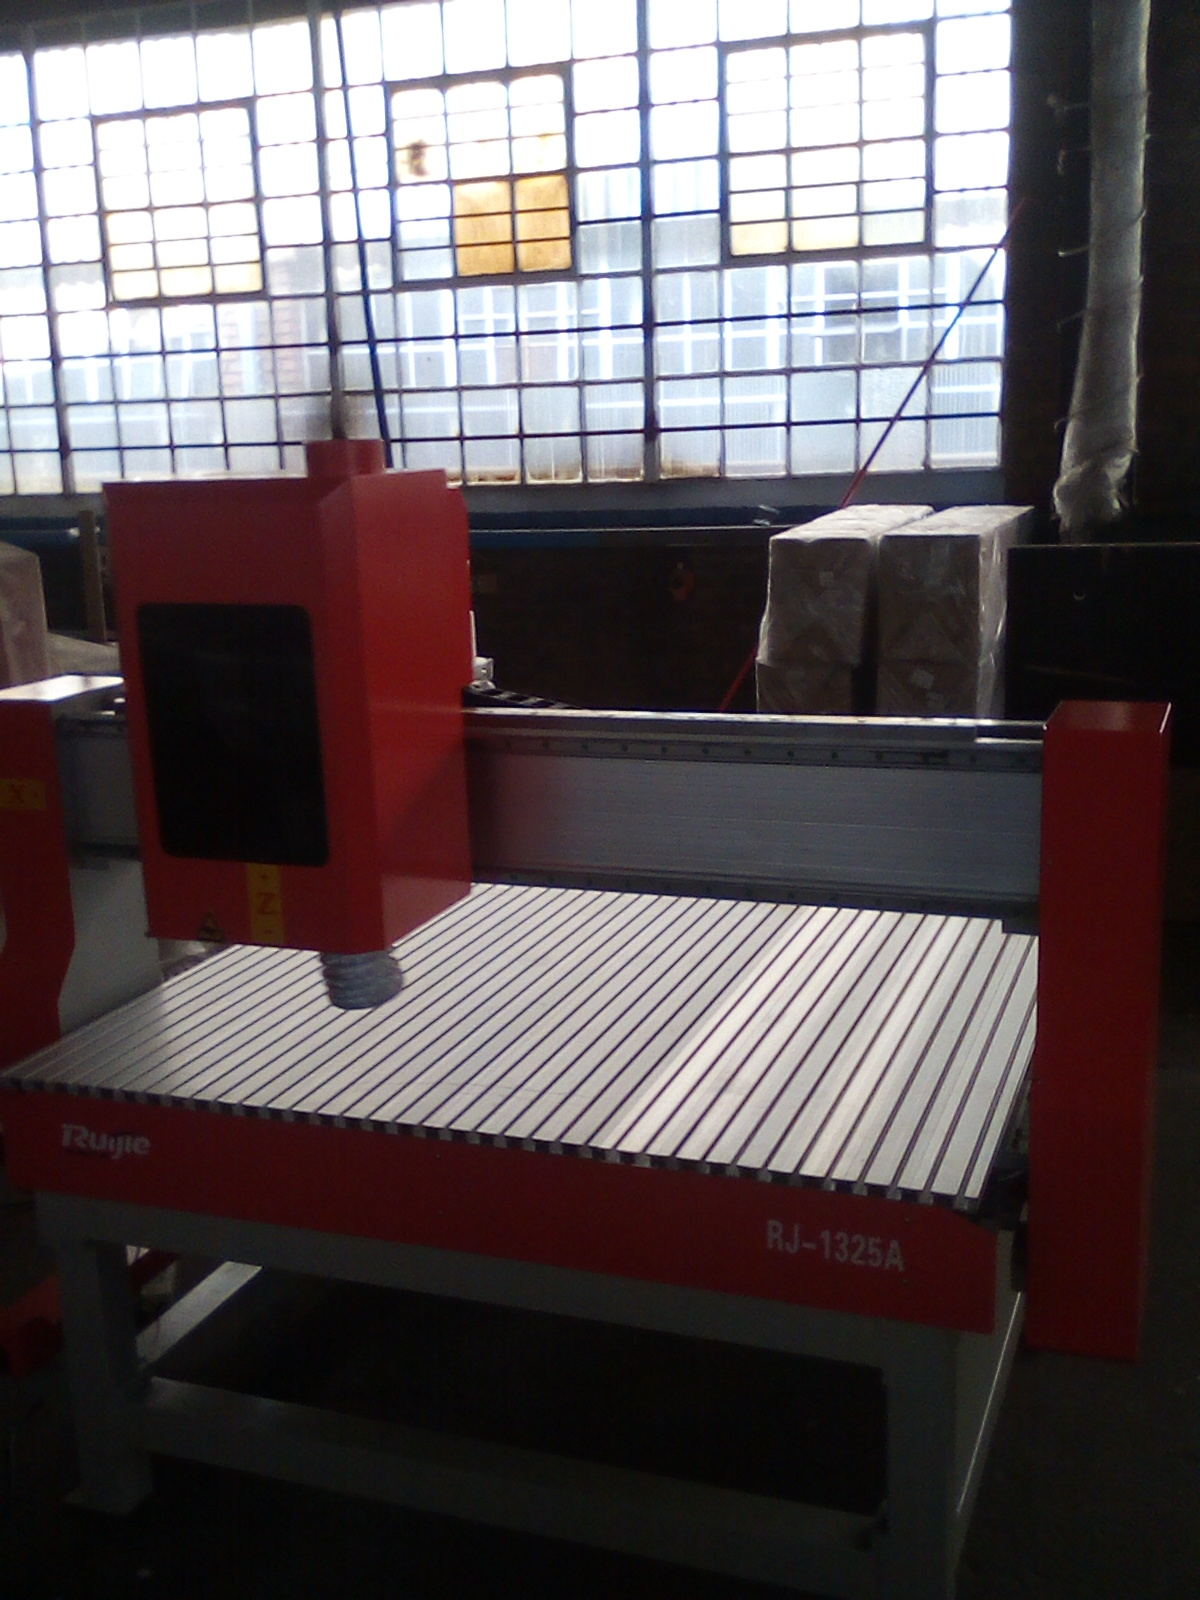 1300x2500mm cnc router for all engraving and cutting needs!!!